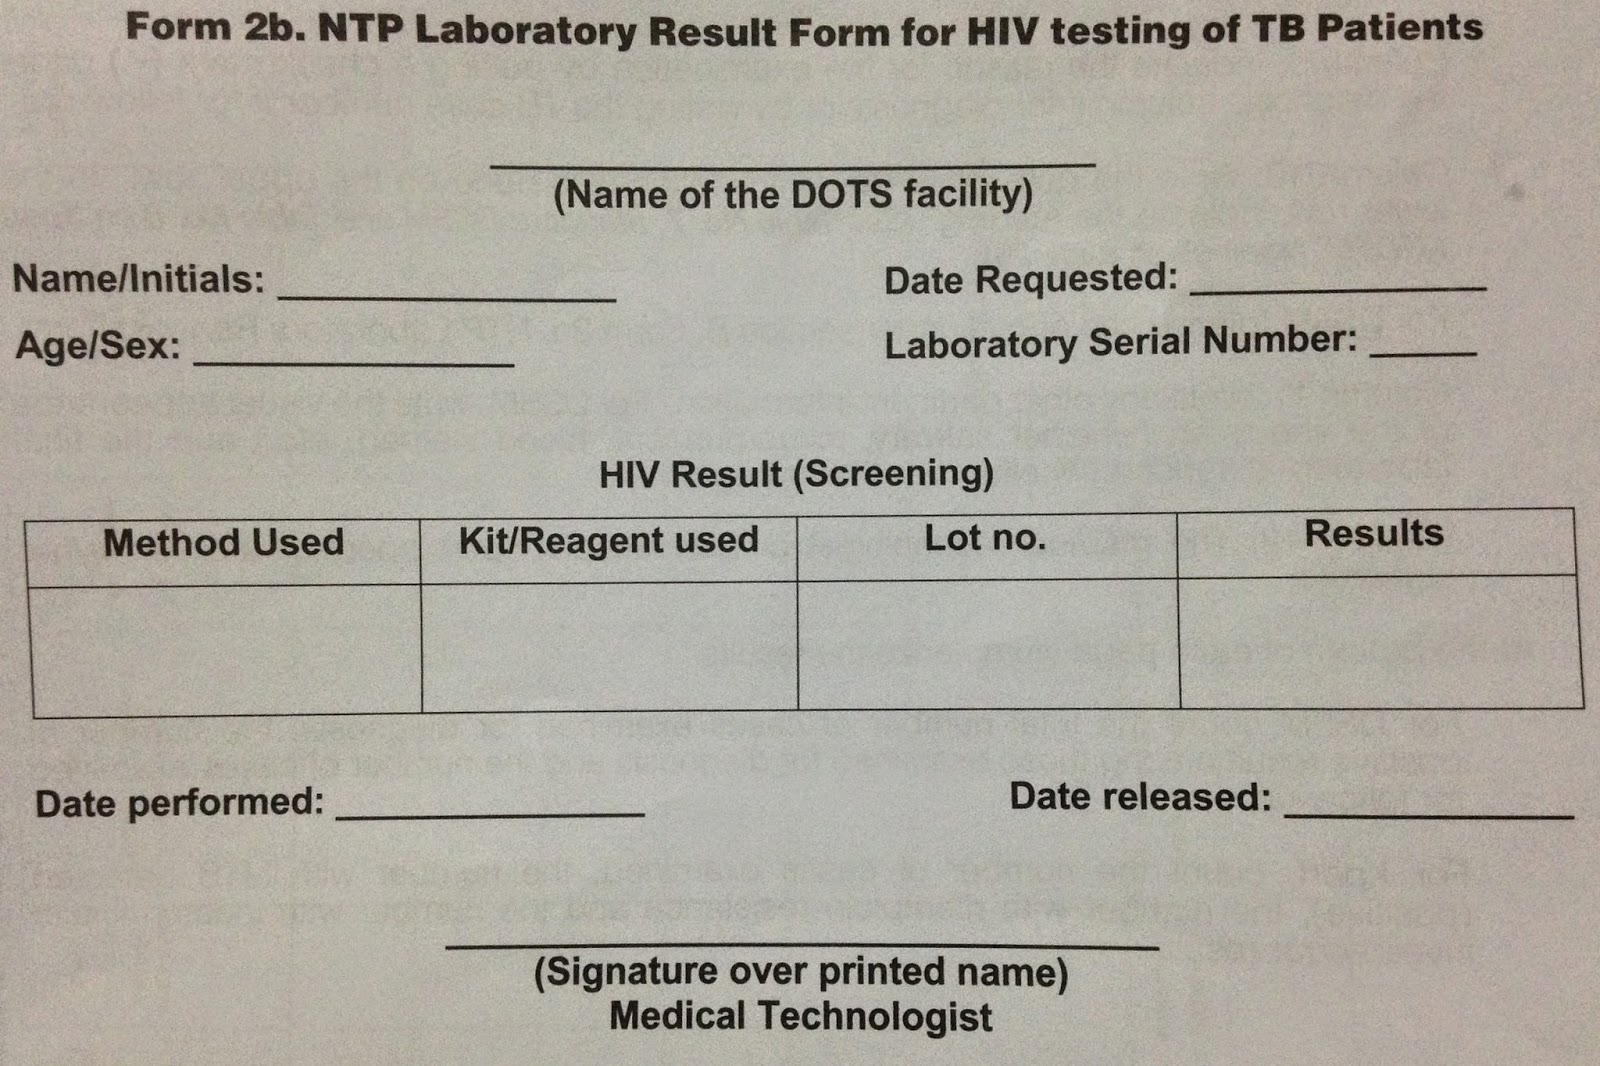 Public Health Resources Form 2b Ntp Lab Result Form For Hiv Testing